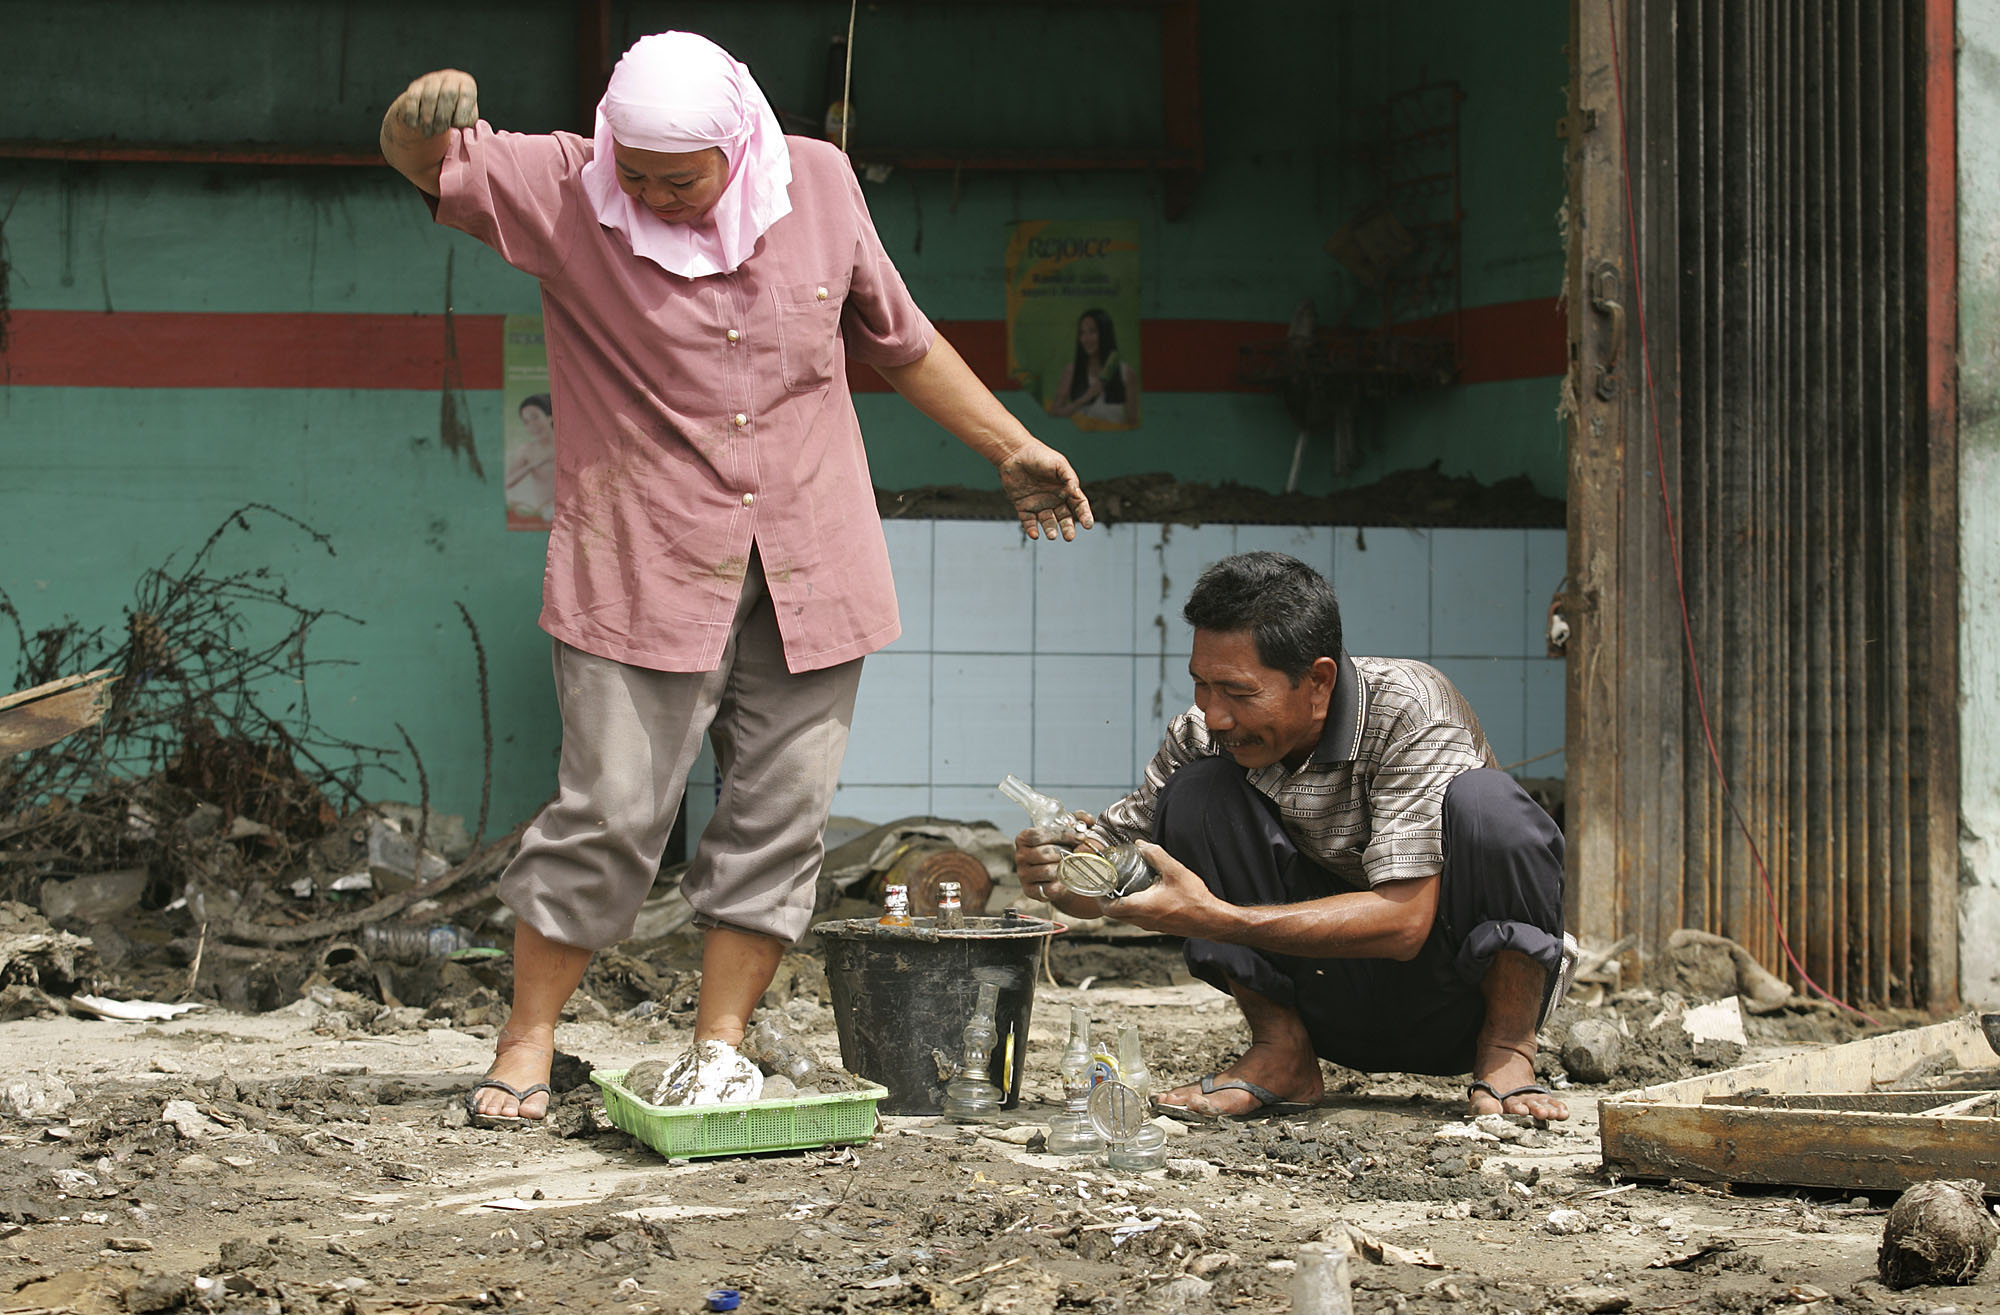 Shopkeepers salvage oil lamps from the wreckage of their store. Photo by Mike DuBose, UMNS.